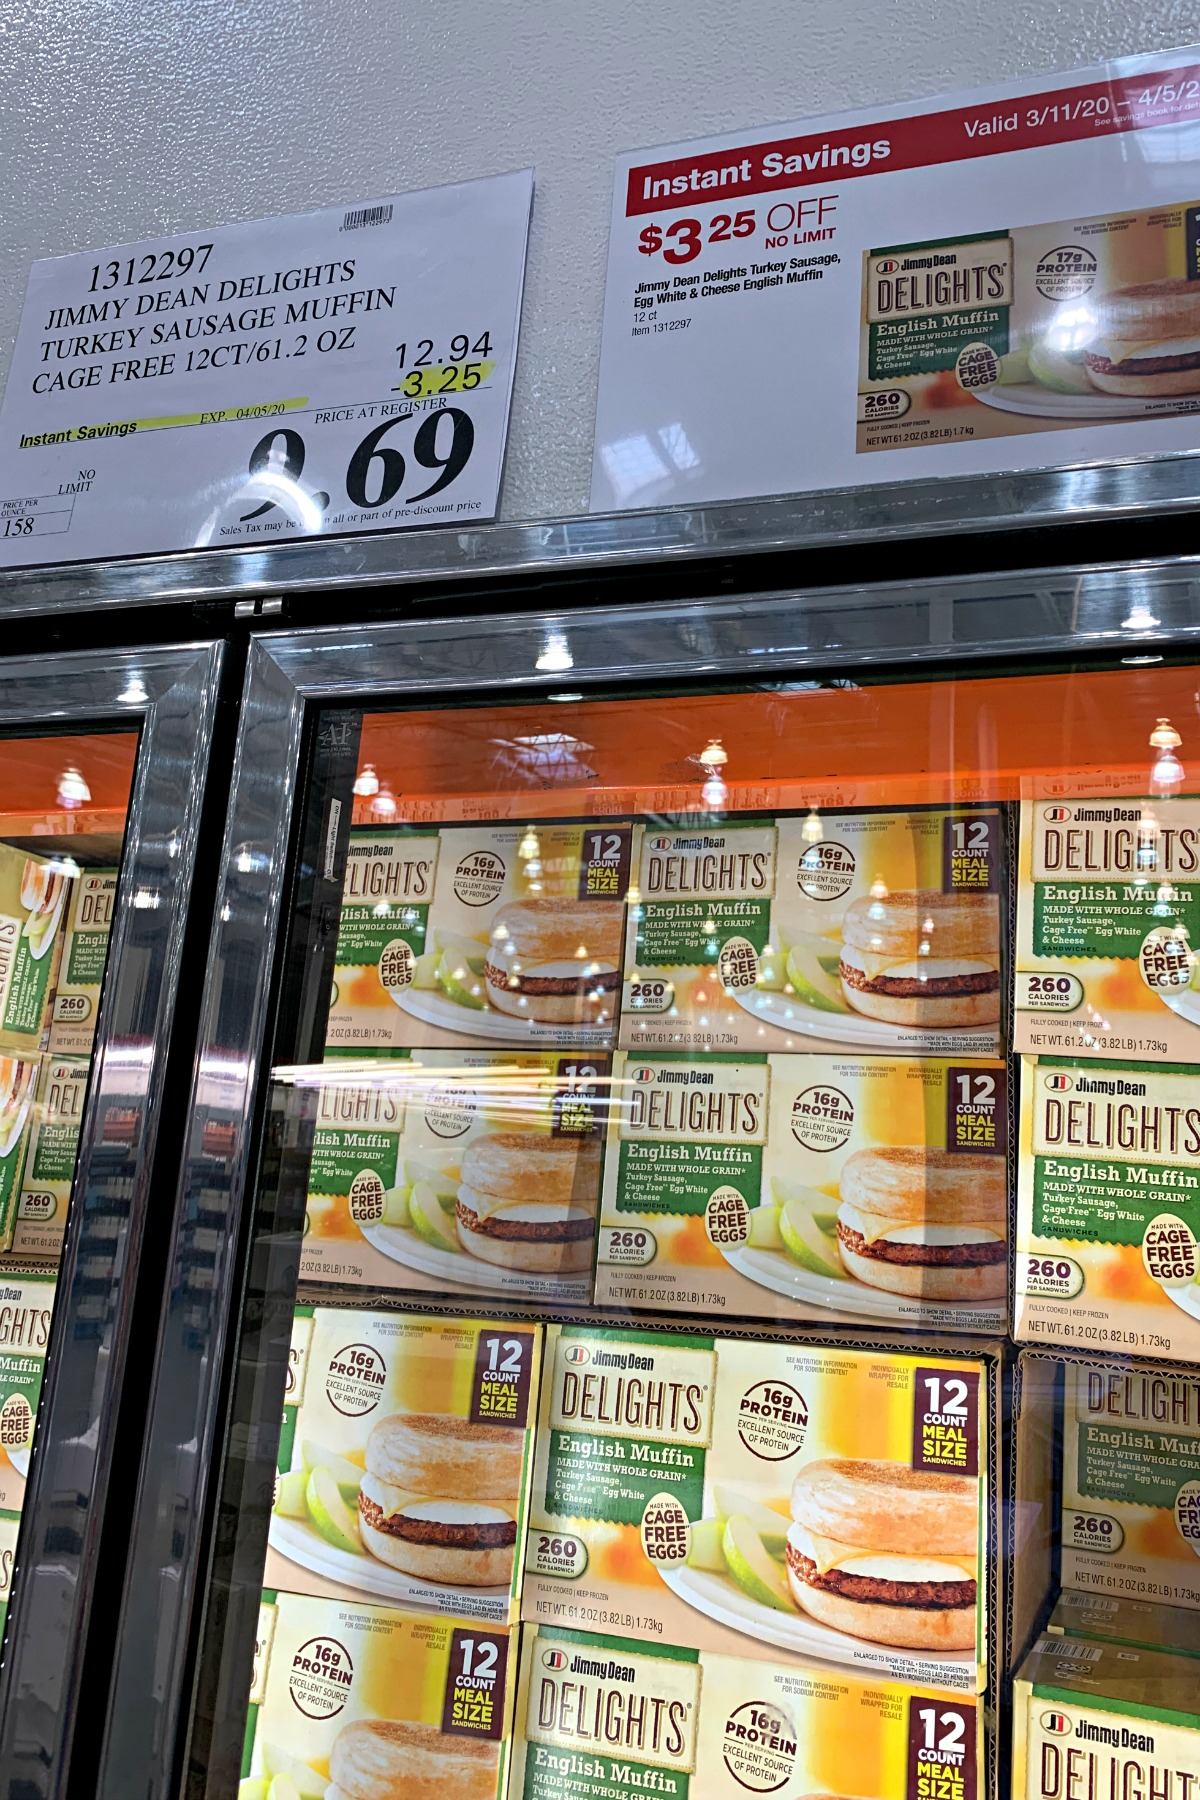 Jimmy Dean Cage Free Turkey Sausage Muffins in freezer section at Costco